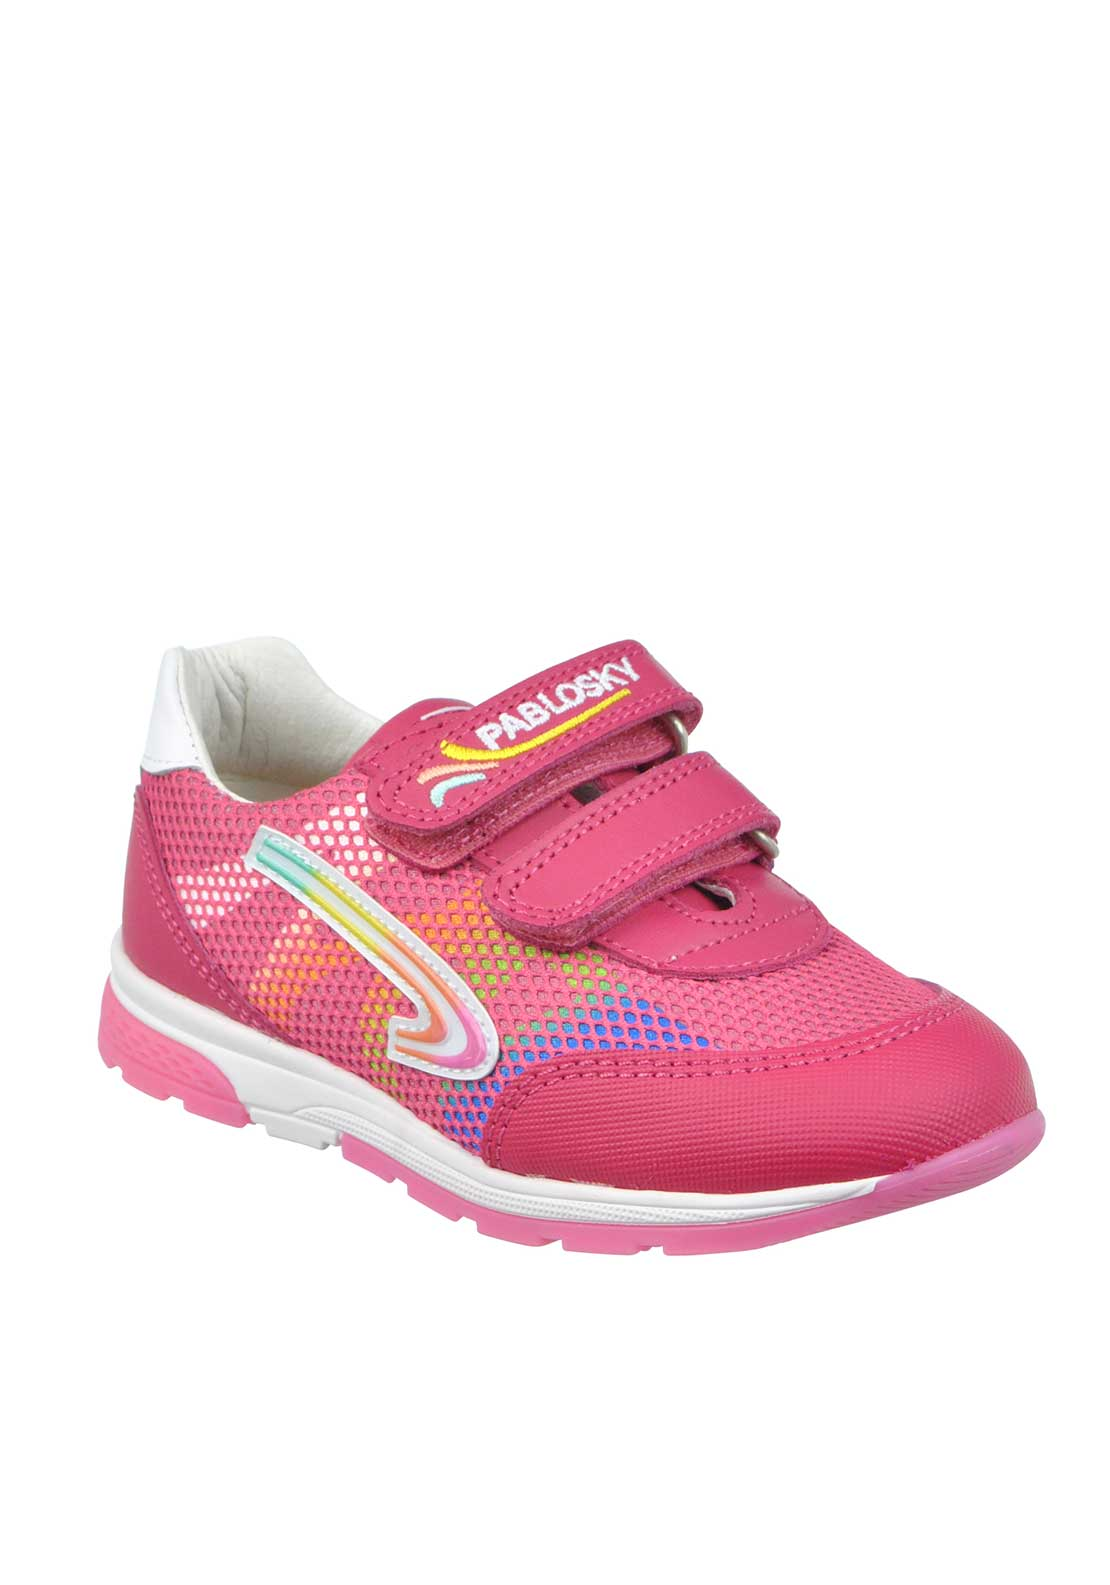 Pablosky Girls Leather Mix Leather Strap Trainers, Pink